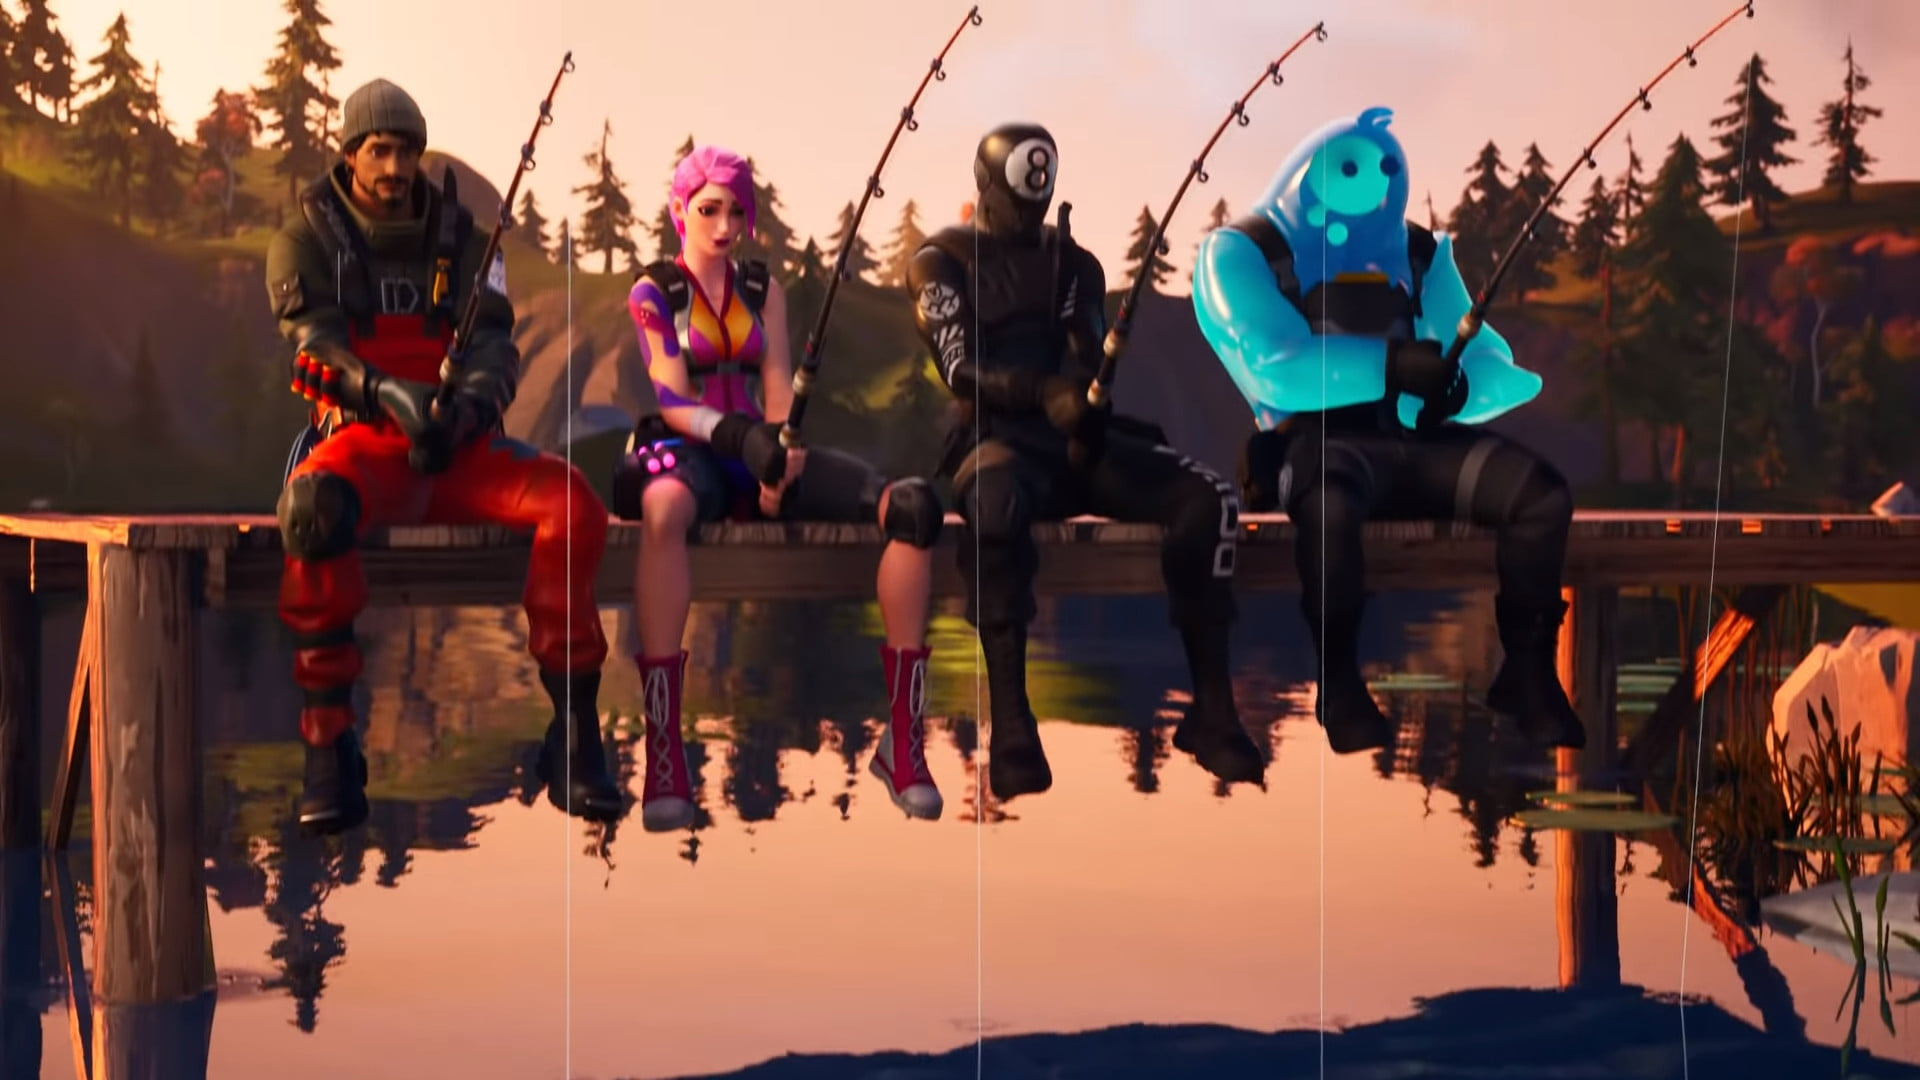 How to fish in Fortnite: Chapter 2